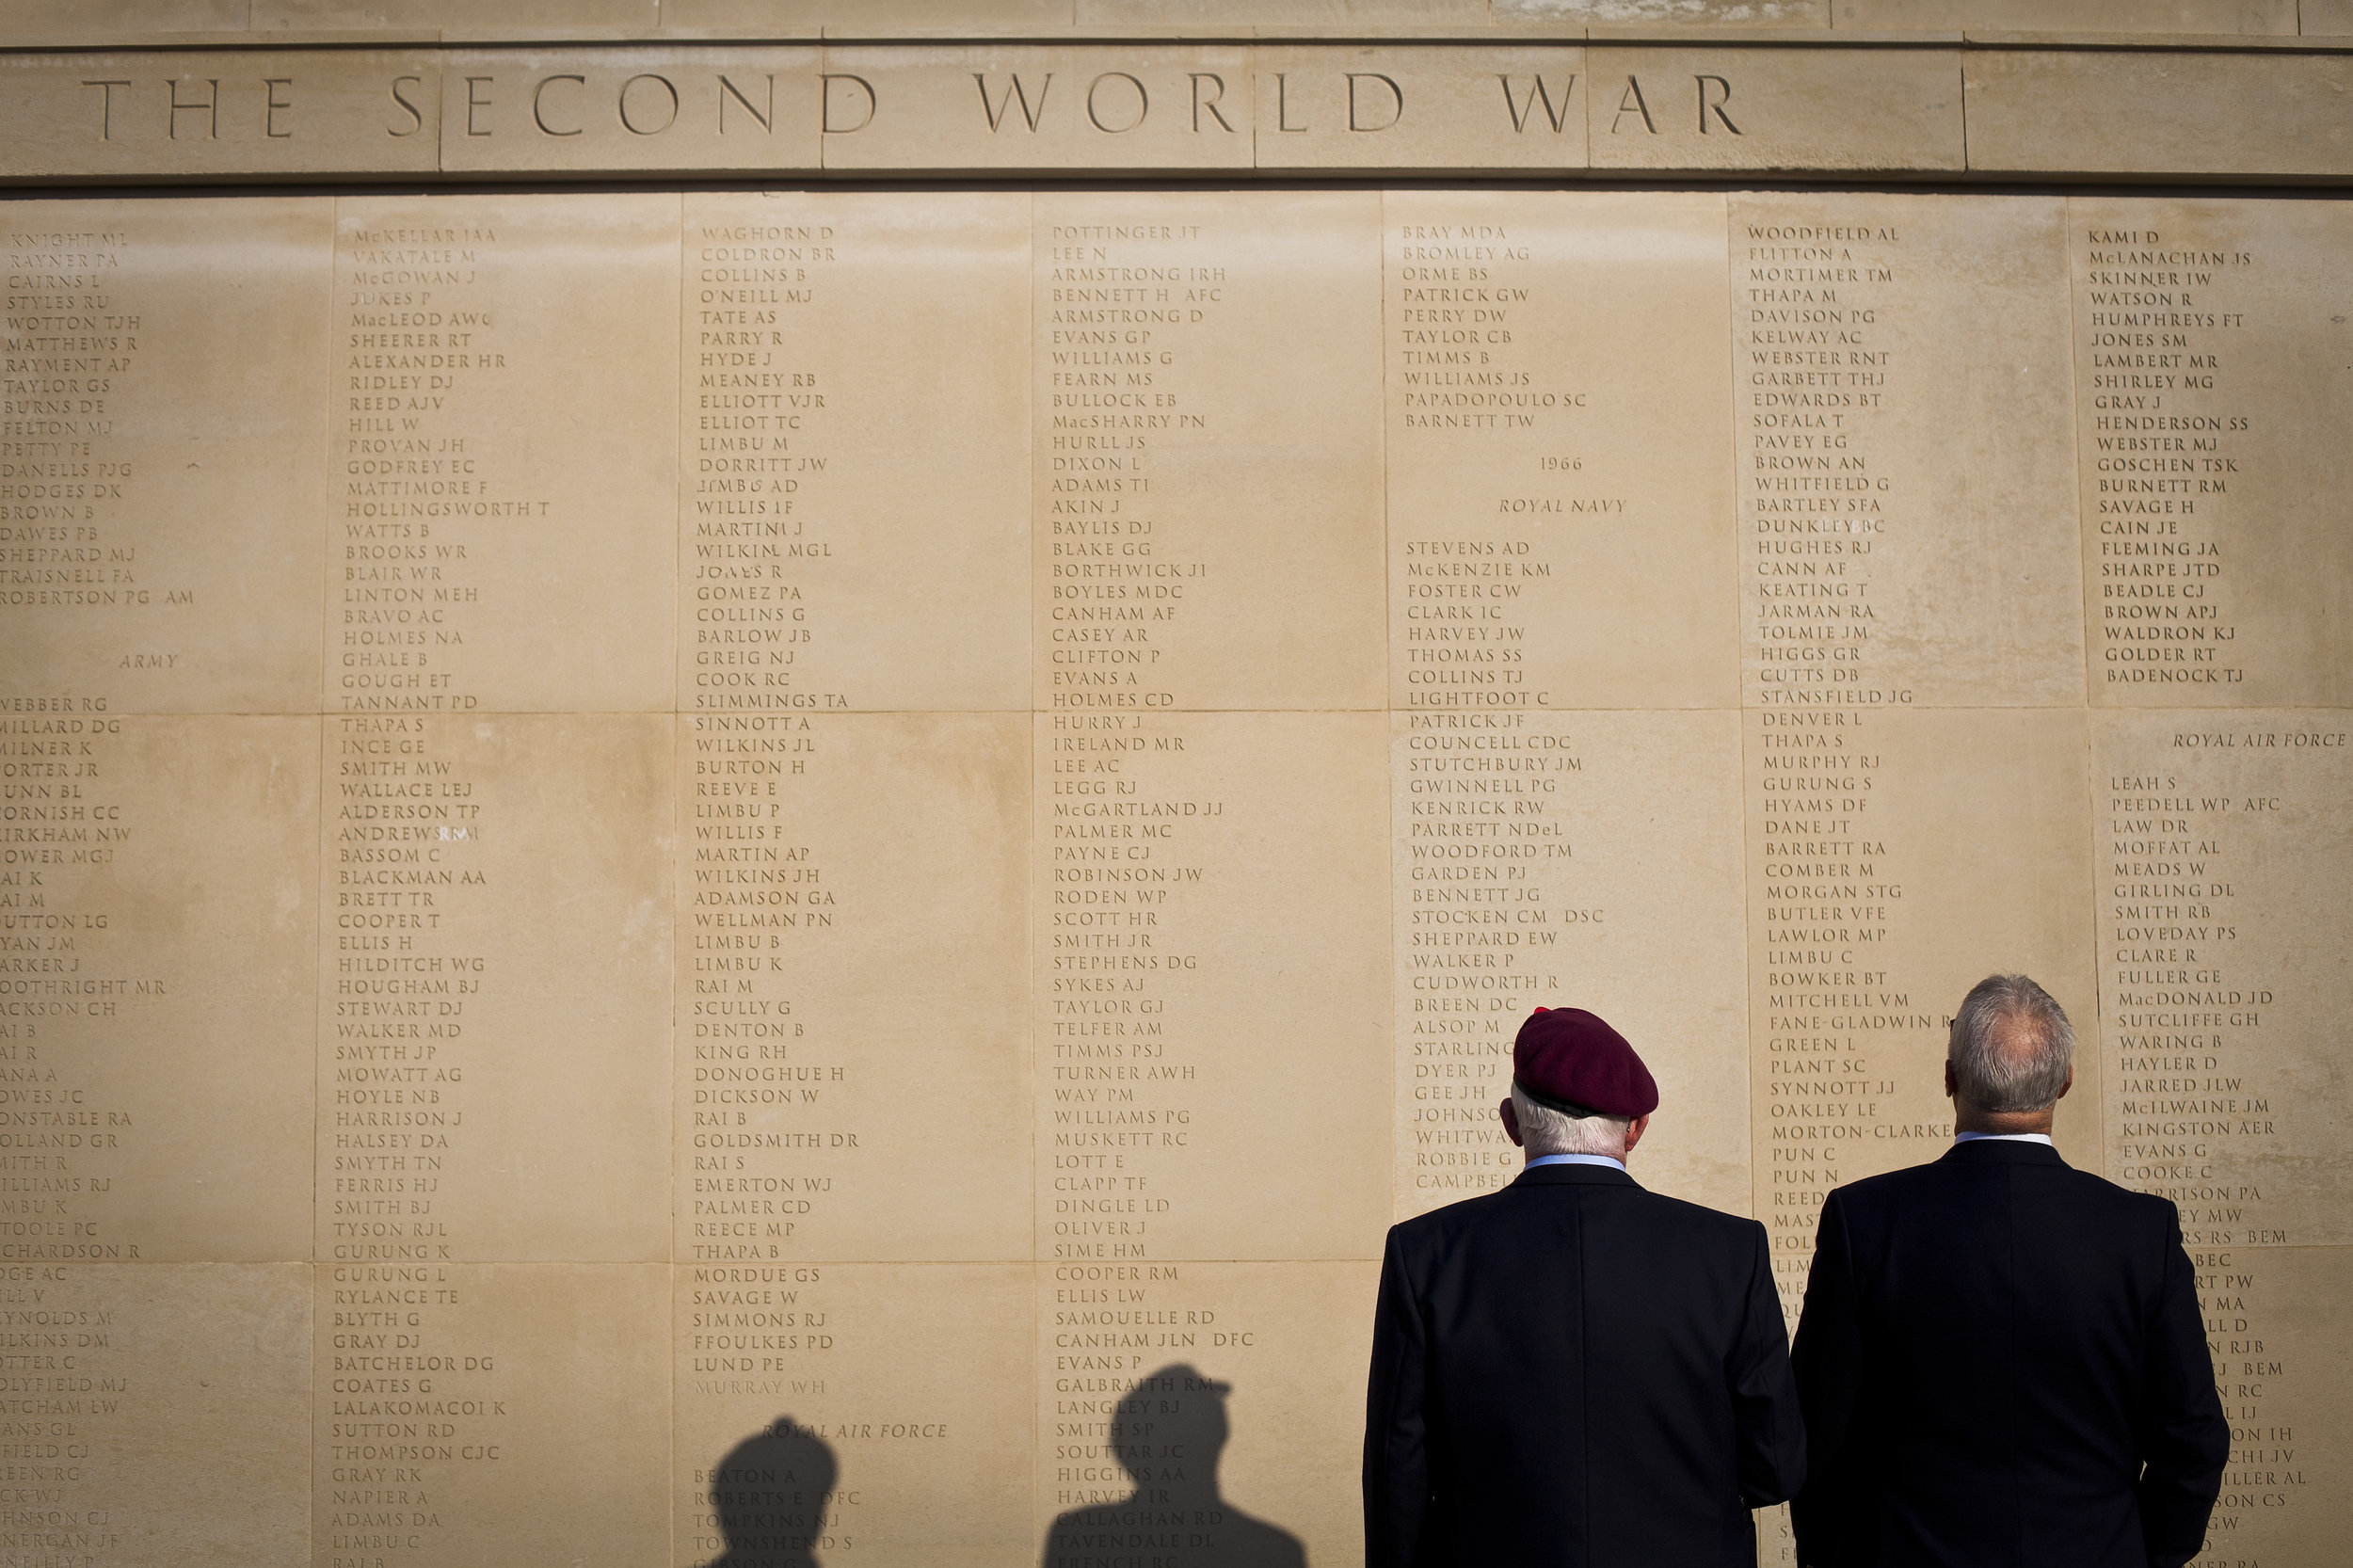 People visit the Armed Forces Memorial ahead of the Remembrance Sunday Service at the National Memorial Arboretum in Alrewas, Staffordshire